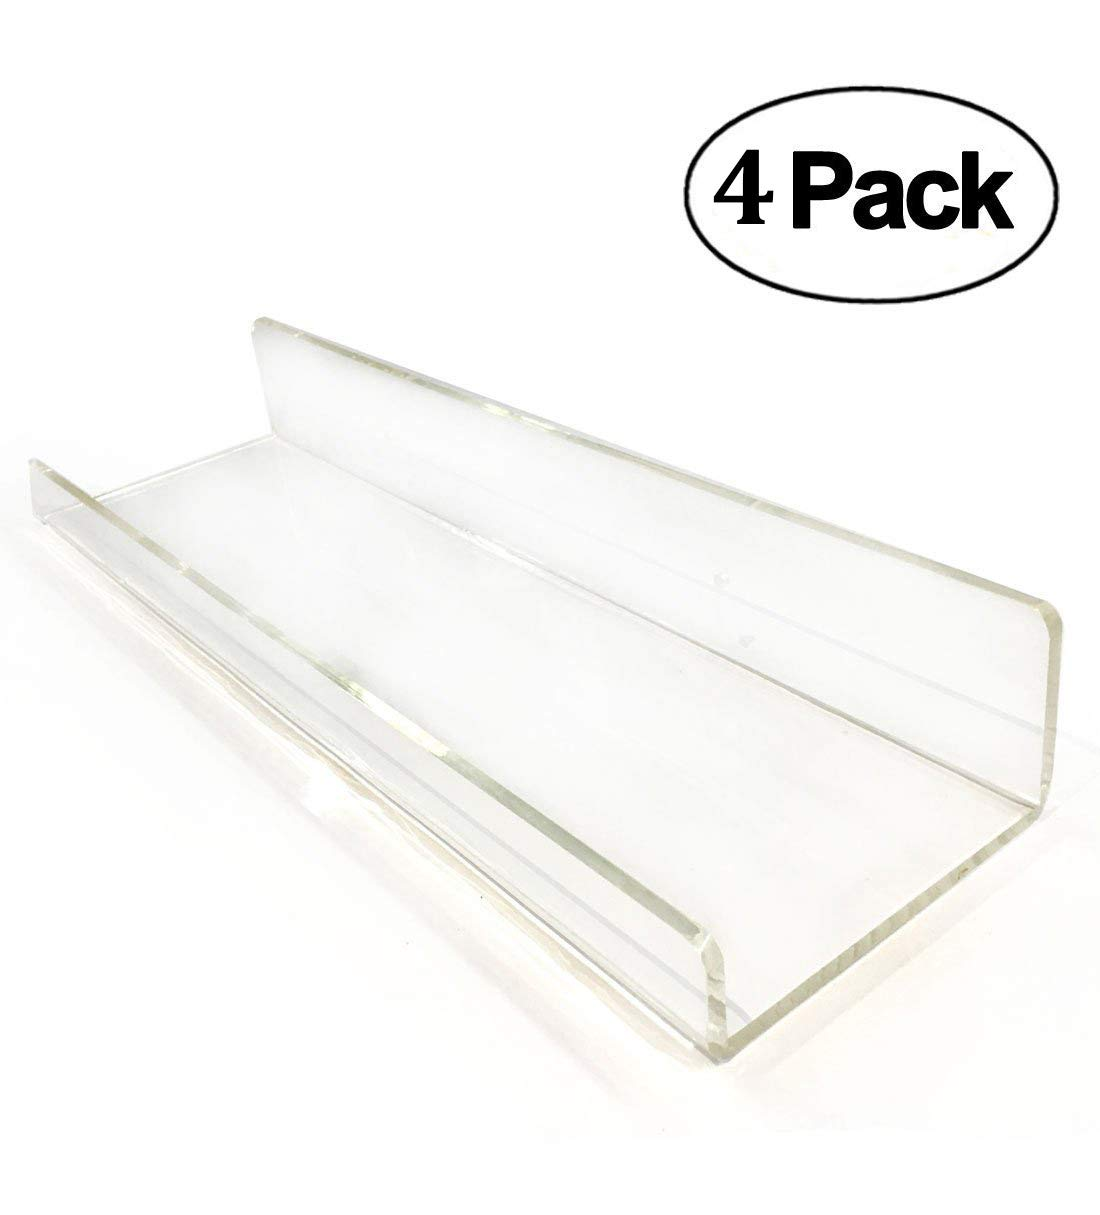 4 clear heavy duty floating shelves acrylic bathroom shelf sets contemporary 6207924259543. Black Bedroom Furniture Sets. Home Design Ideas